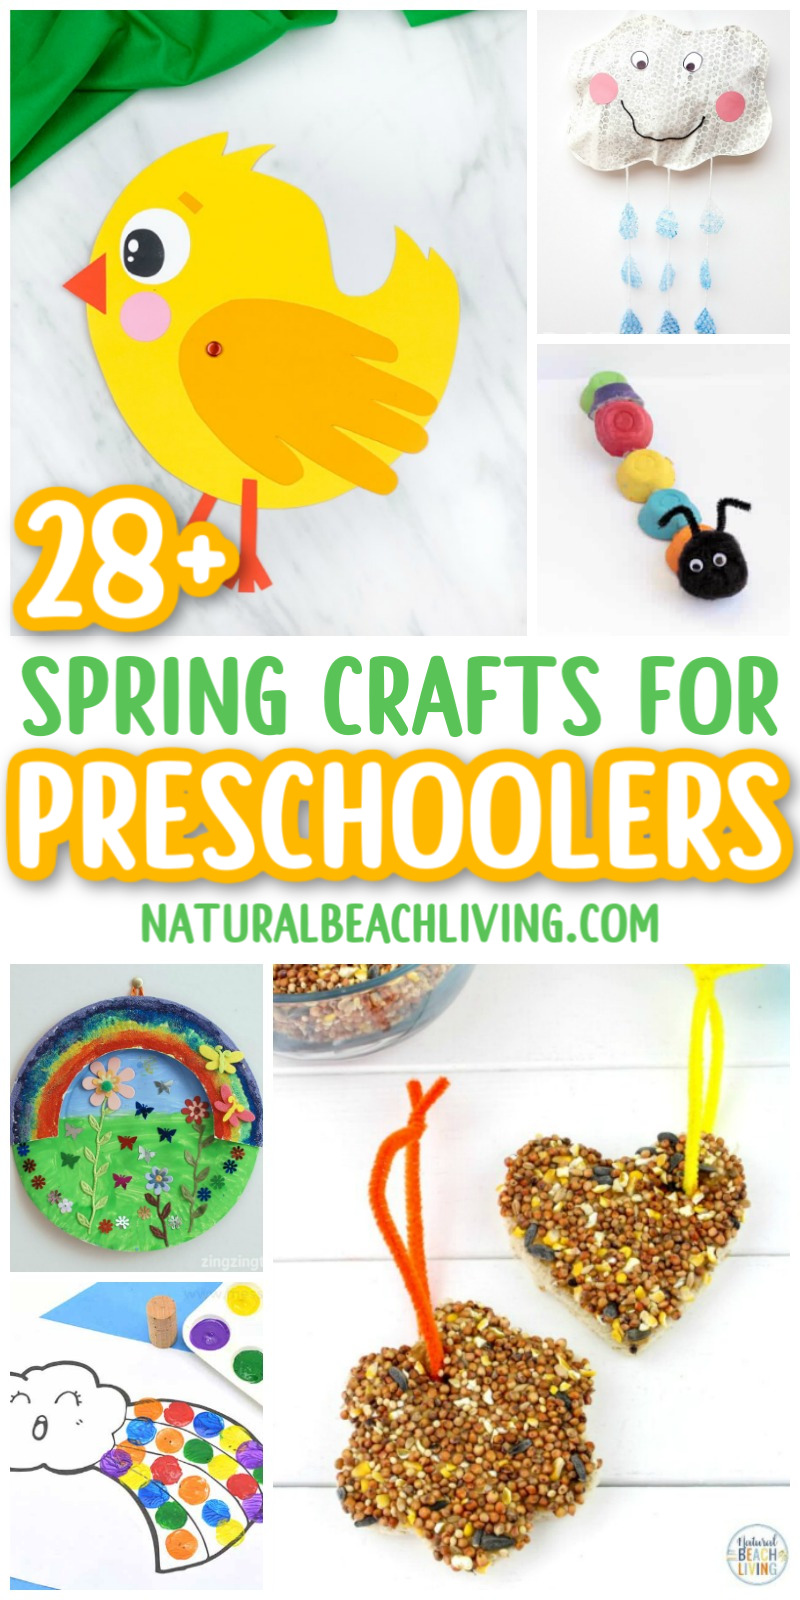 Over 30 Spring Preschool Crafts to give your kids inspiration! Springtime is the perfect time to plan a few craft projects. You'll find bird themed crafts, flower projects, ladybug crafts, rainbow crafts, and so much more. With lots of bright colors and fun spring themes.